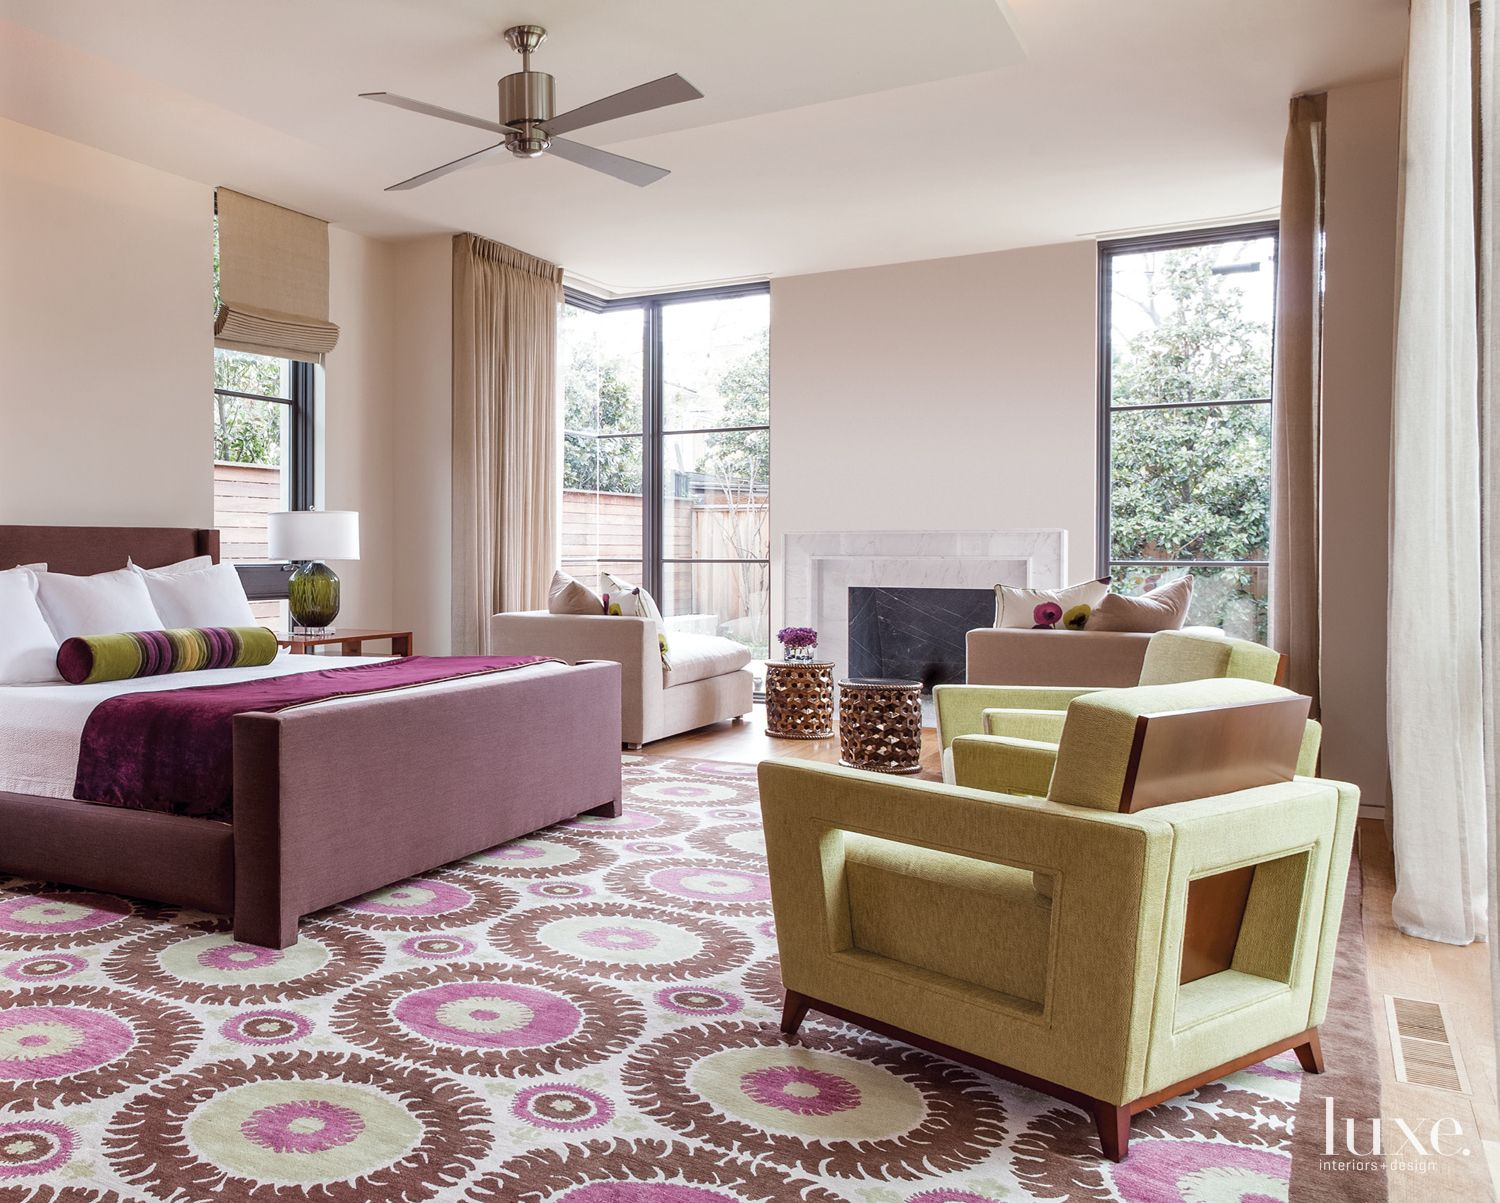 Master Bedroom with Colorful, Patterned Rug